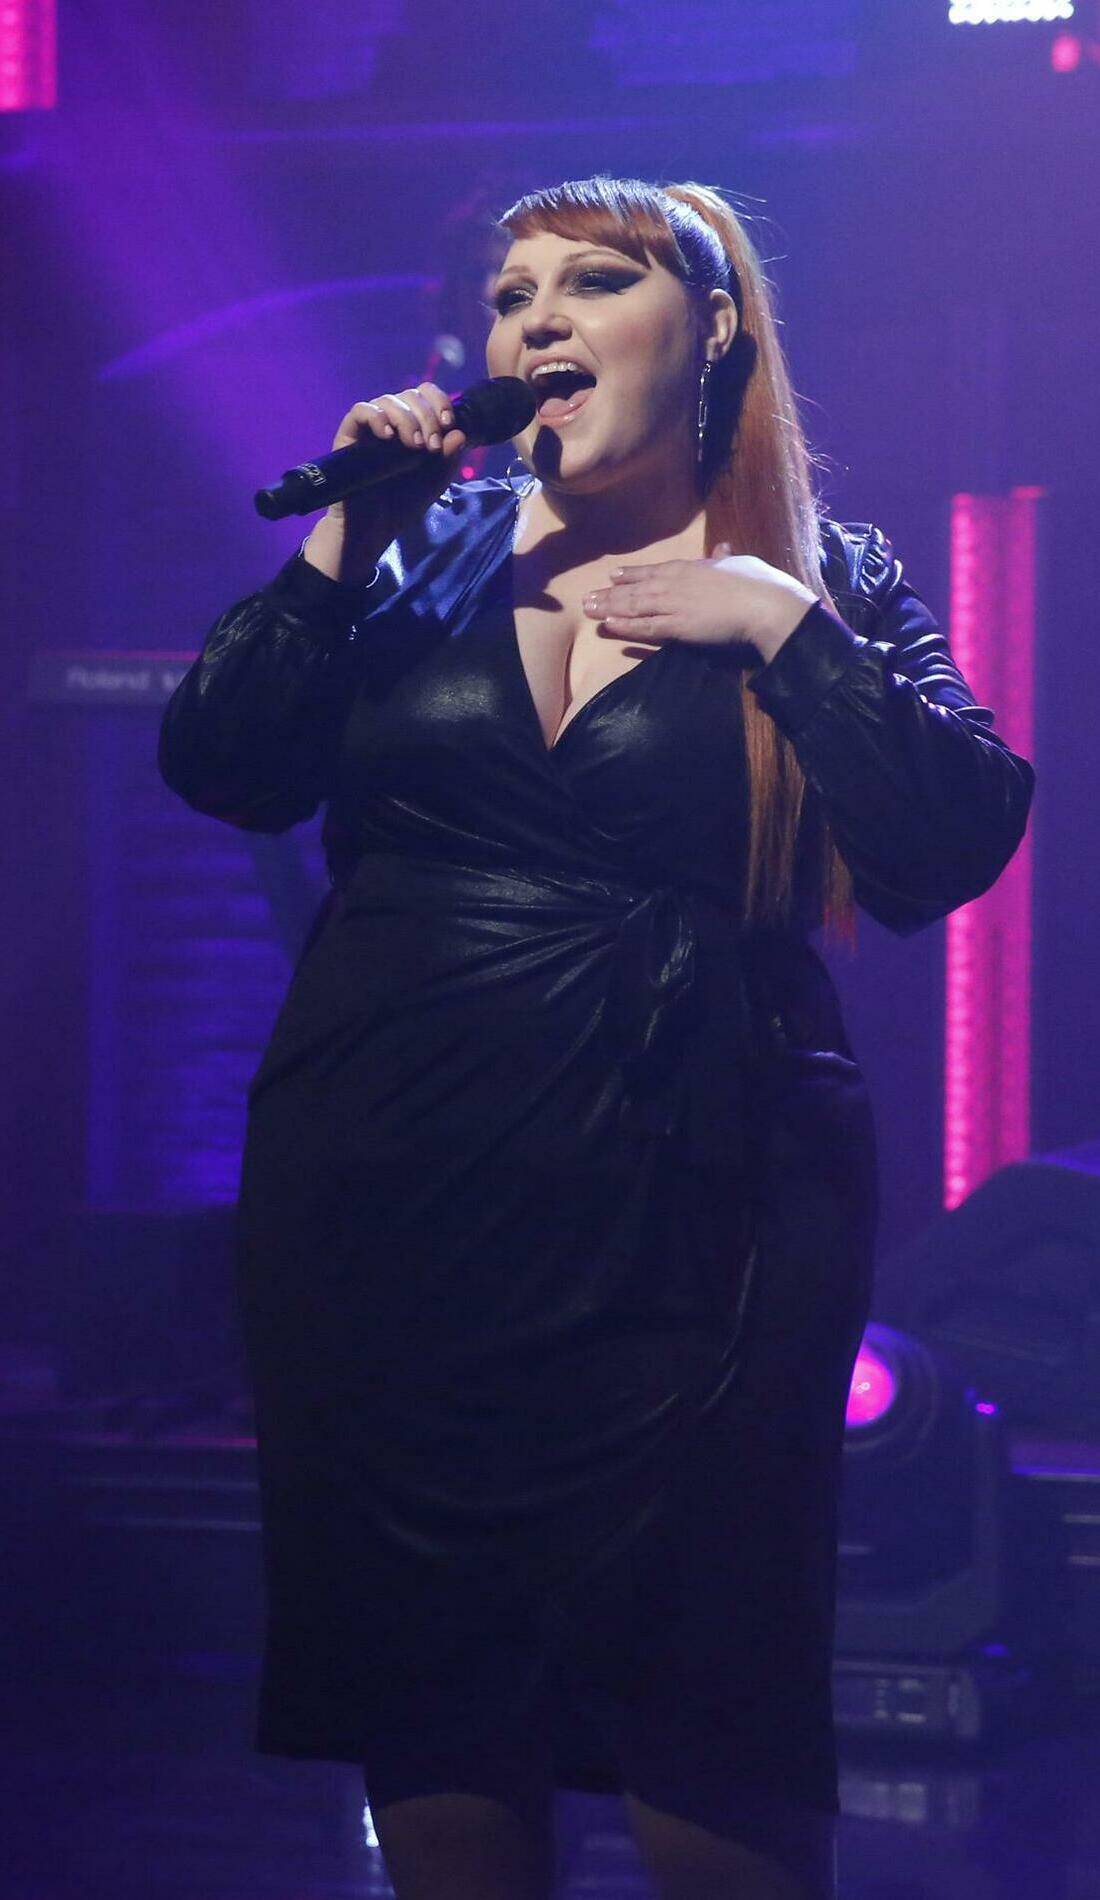 A Beth Ditto live event